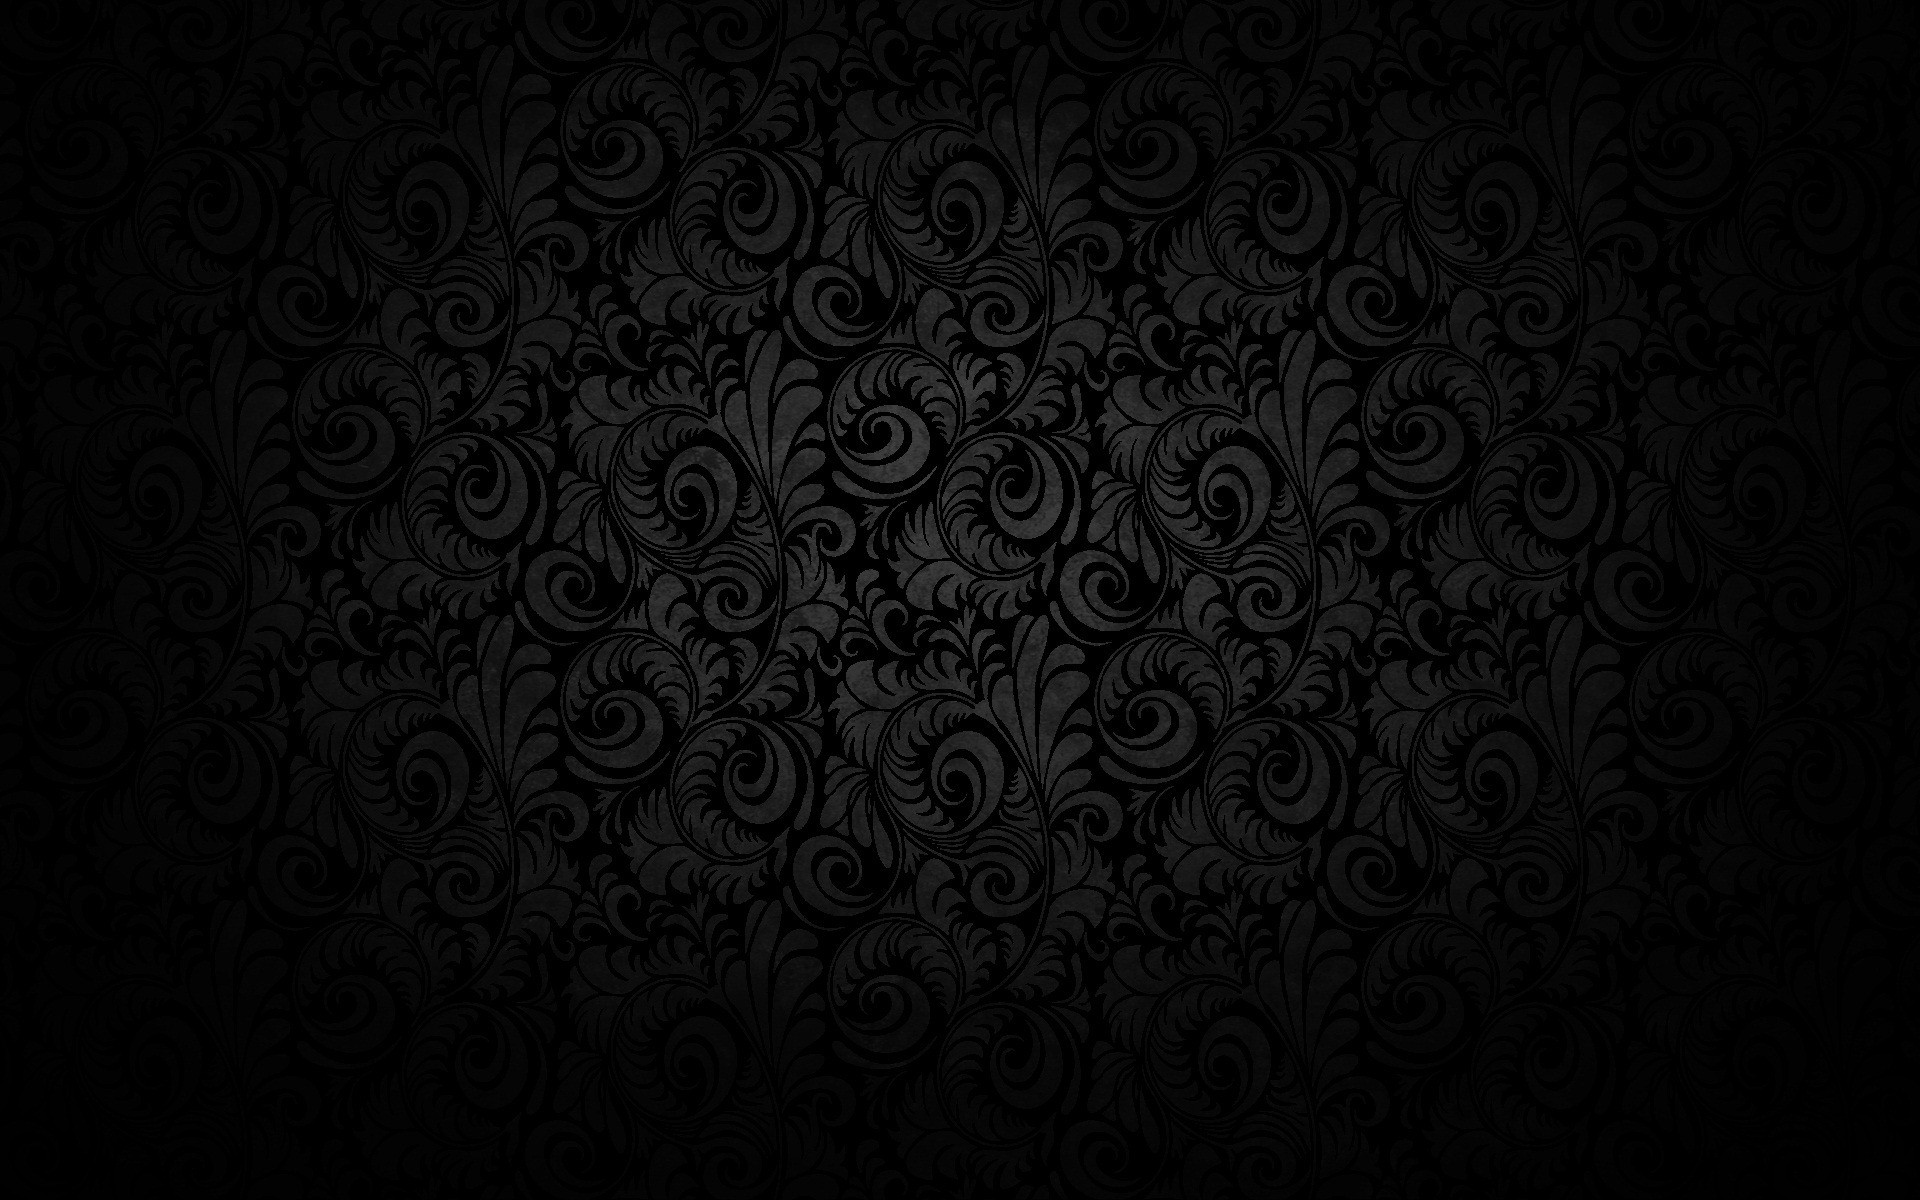 black and white photos | ABSTRACT PATTERN HD WALLPAPER